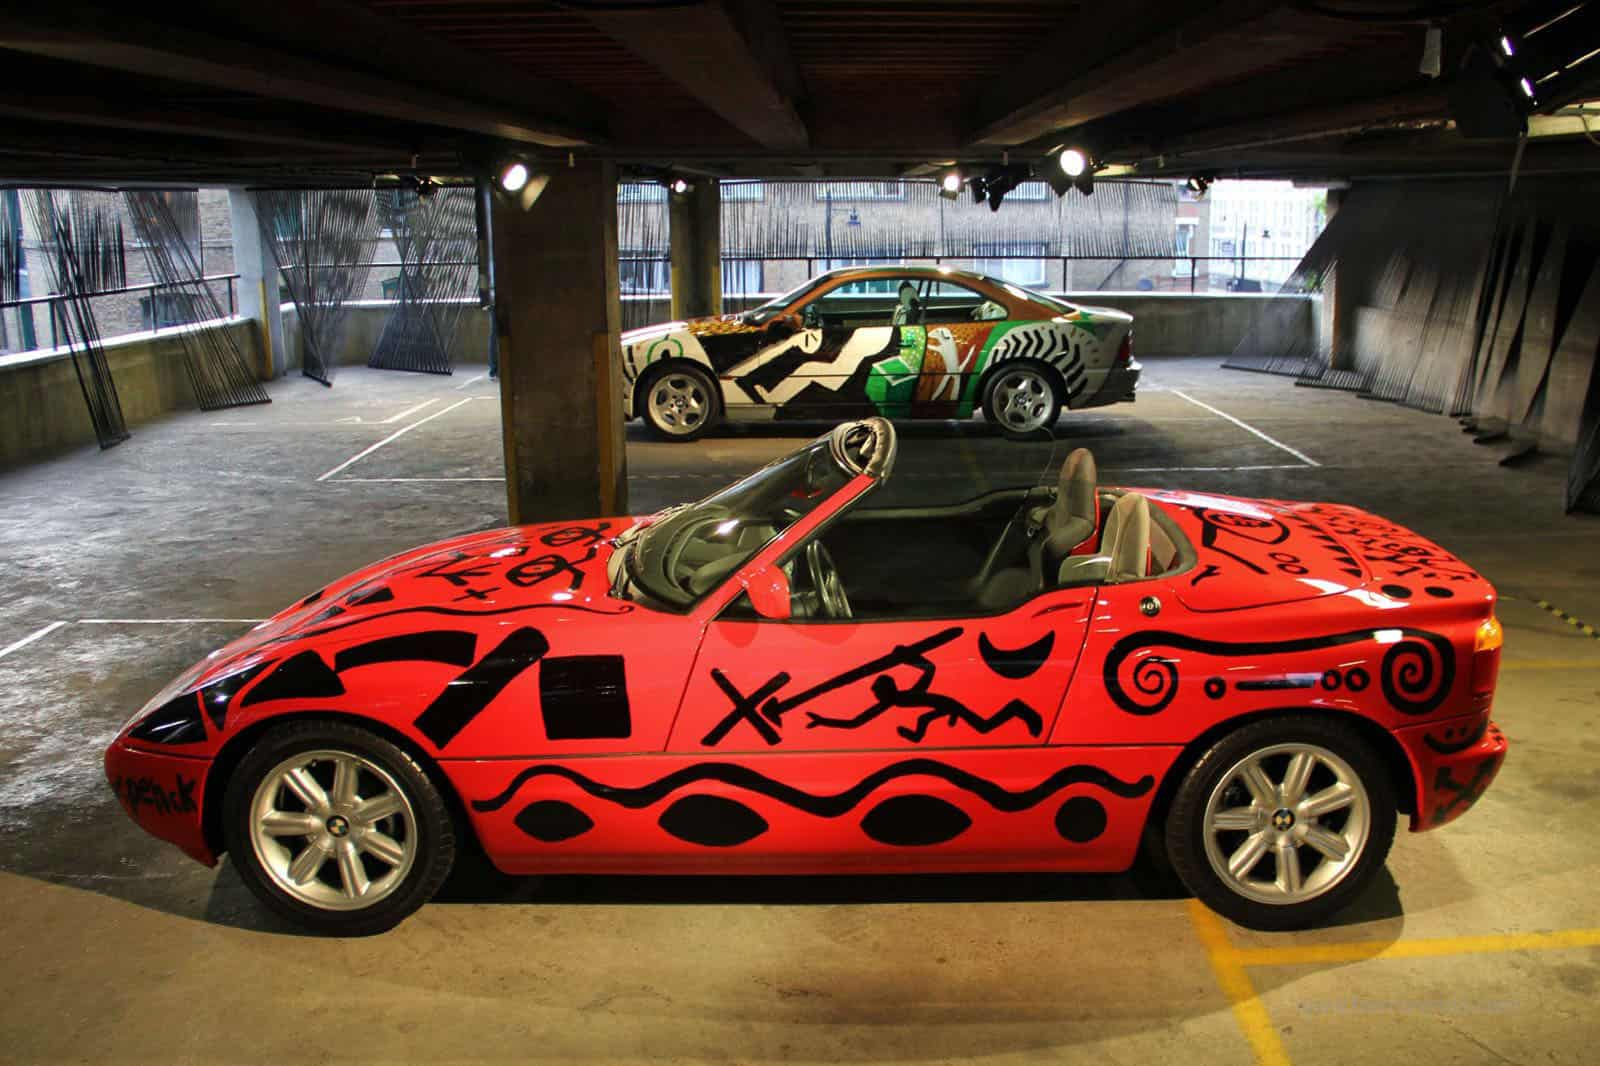 London Institute of Contemporary Arts Showcases BMW Art Cars